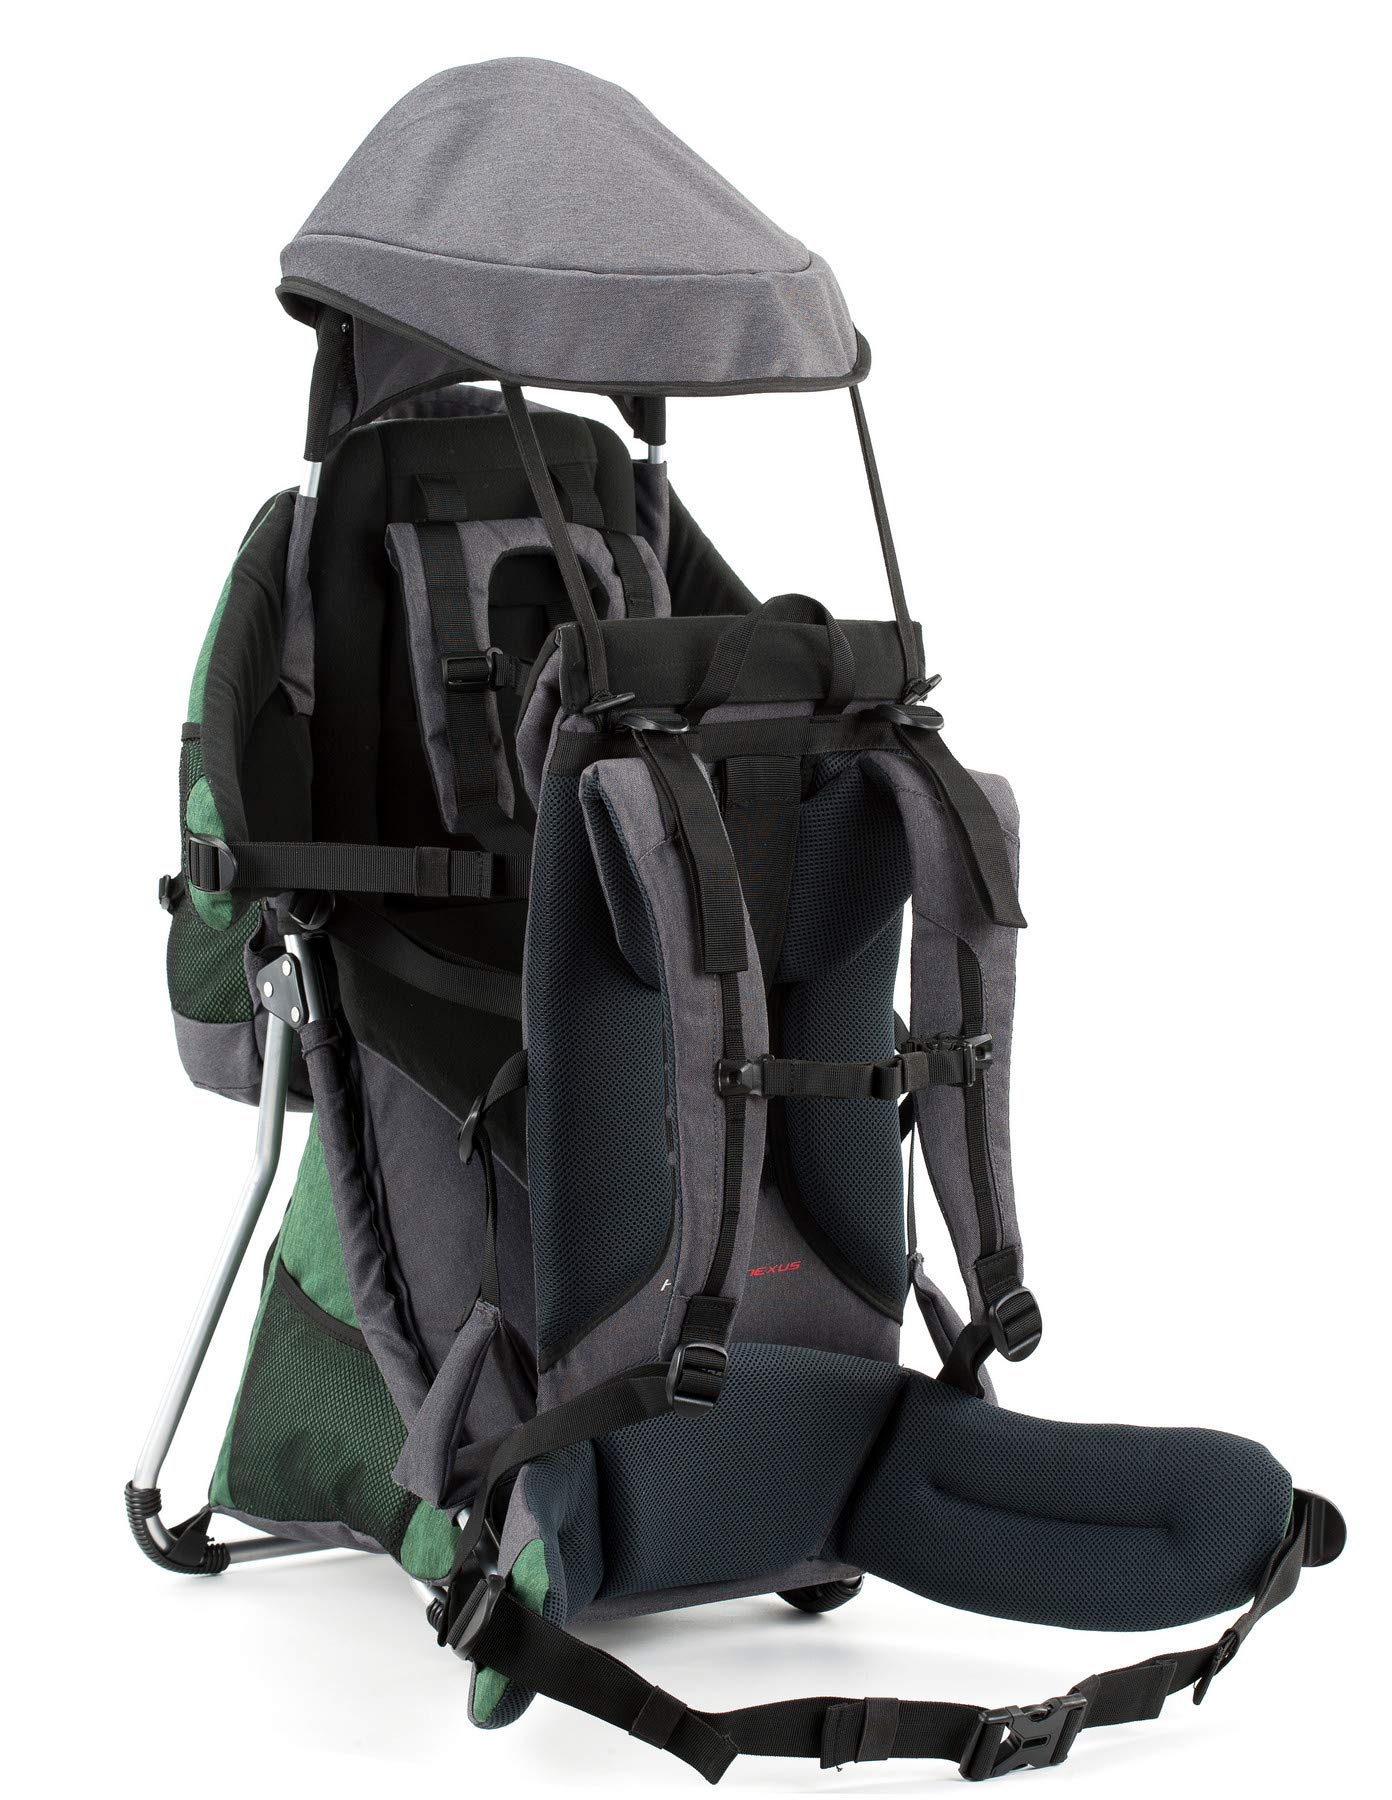 Montis HOOVER NEXUS, Child Hiking Backpack Carrier, suitable for babies & toddlers with a stable seat, low weight suitable, many extras, premium quality (GREEN) M MONTIS OUTDOOR ✅ SAFE - Practical baby carrier backpack completely adjustable with wide 5-point child harness for children weighing up to 25 kg instead of 20 kg. Thanks to height-adjustable seat cushions, padded side panels, a rear headrest, and forehead cushions, it is ideal for hiking in the city or in the country. With reflective elements on the front and back for night protection. ✅ COMFORTABLE - Suitable for both parents thanks to adjustable shoulder straps, a 14 cm adjustable chest strap with a vertical position for women's ergonomics, and reinforced back area (incl. ventilation system) with load distribution to the pelvic belts. We use materials of the highest quality and focus on flawless manufacturing. ✅ SPACIOUS - Removable additional backpack 10L and seat pocket with 18L volume provide the carrier with additional storage space for water bottles, rain protection, sun protection, changing mat and much more. In addition, the straps of the baby carrier are equipped with small quick-access pockets to avoid the need of constantly taking off the carrier. 4